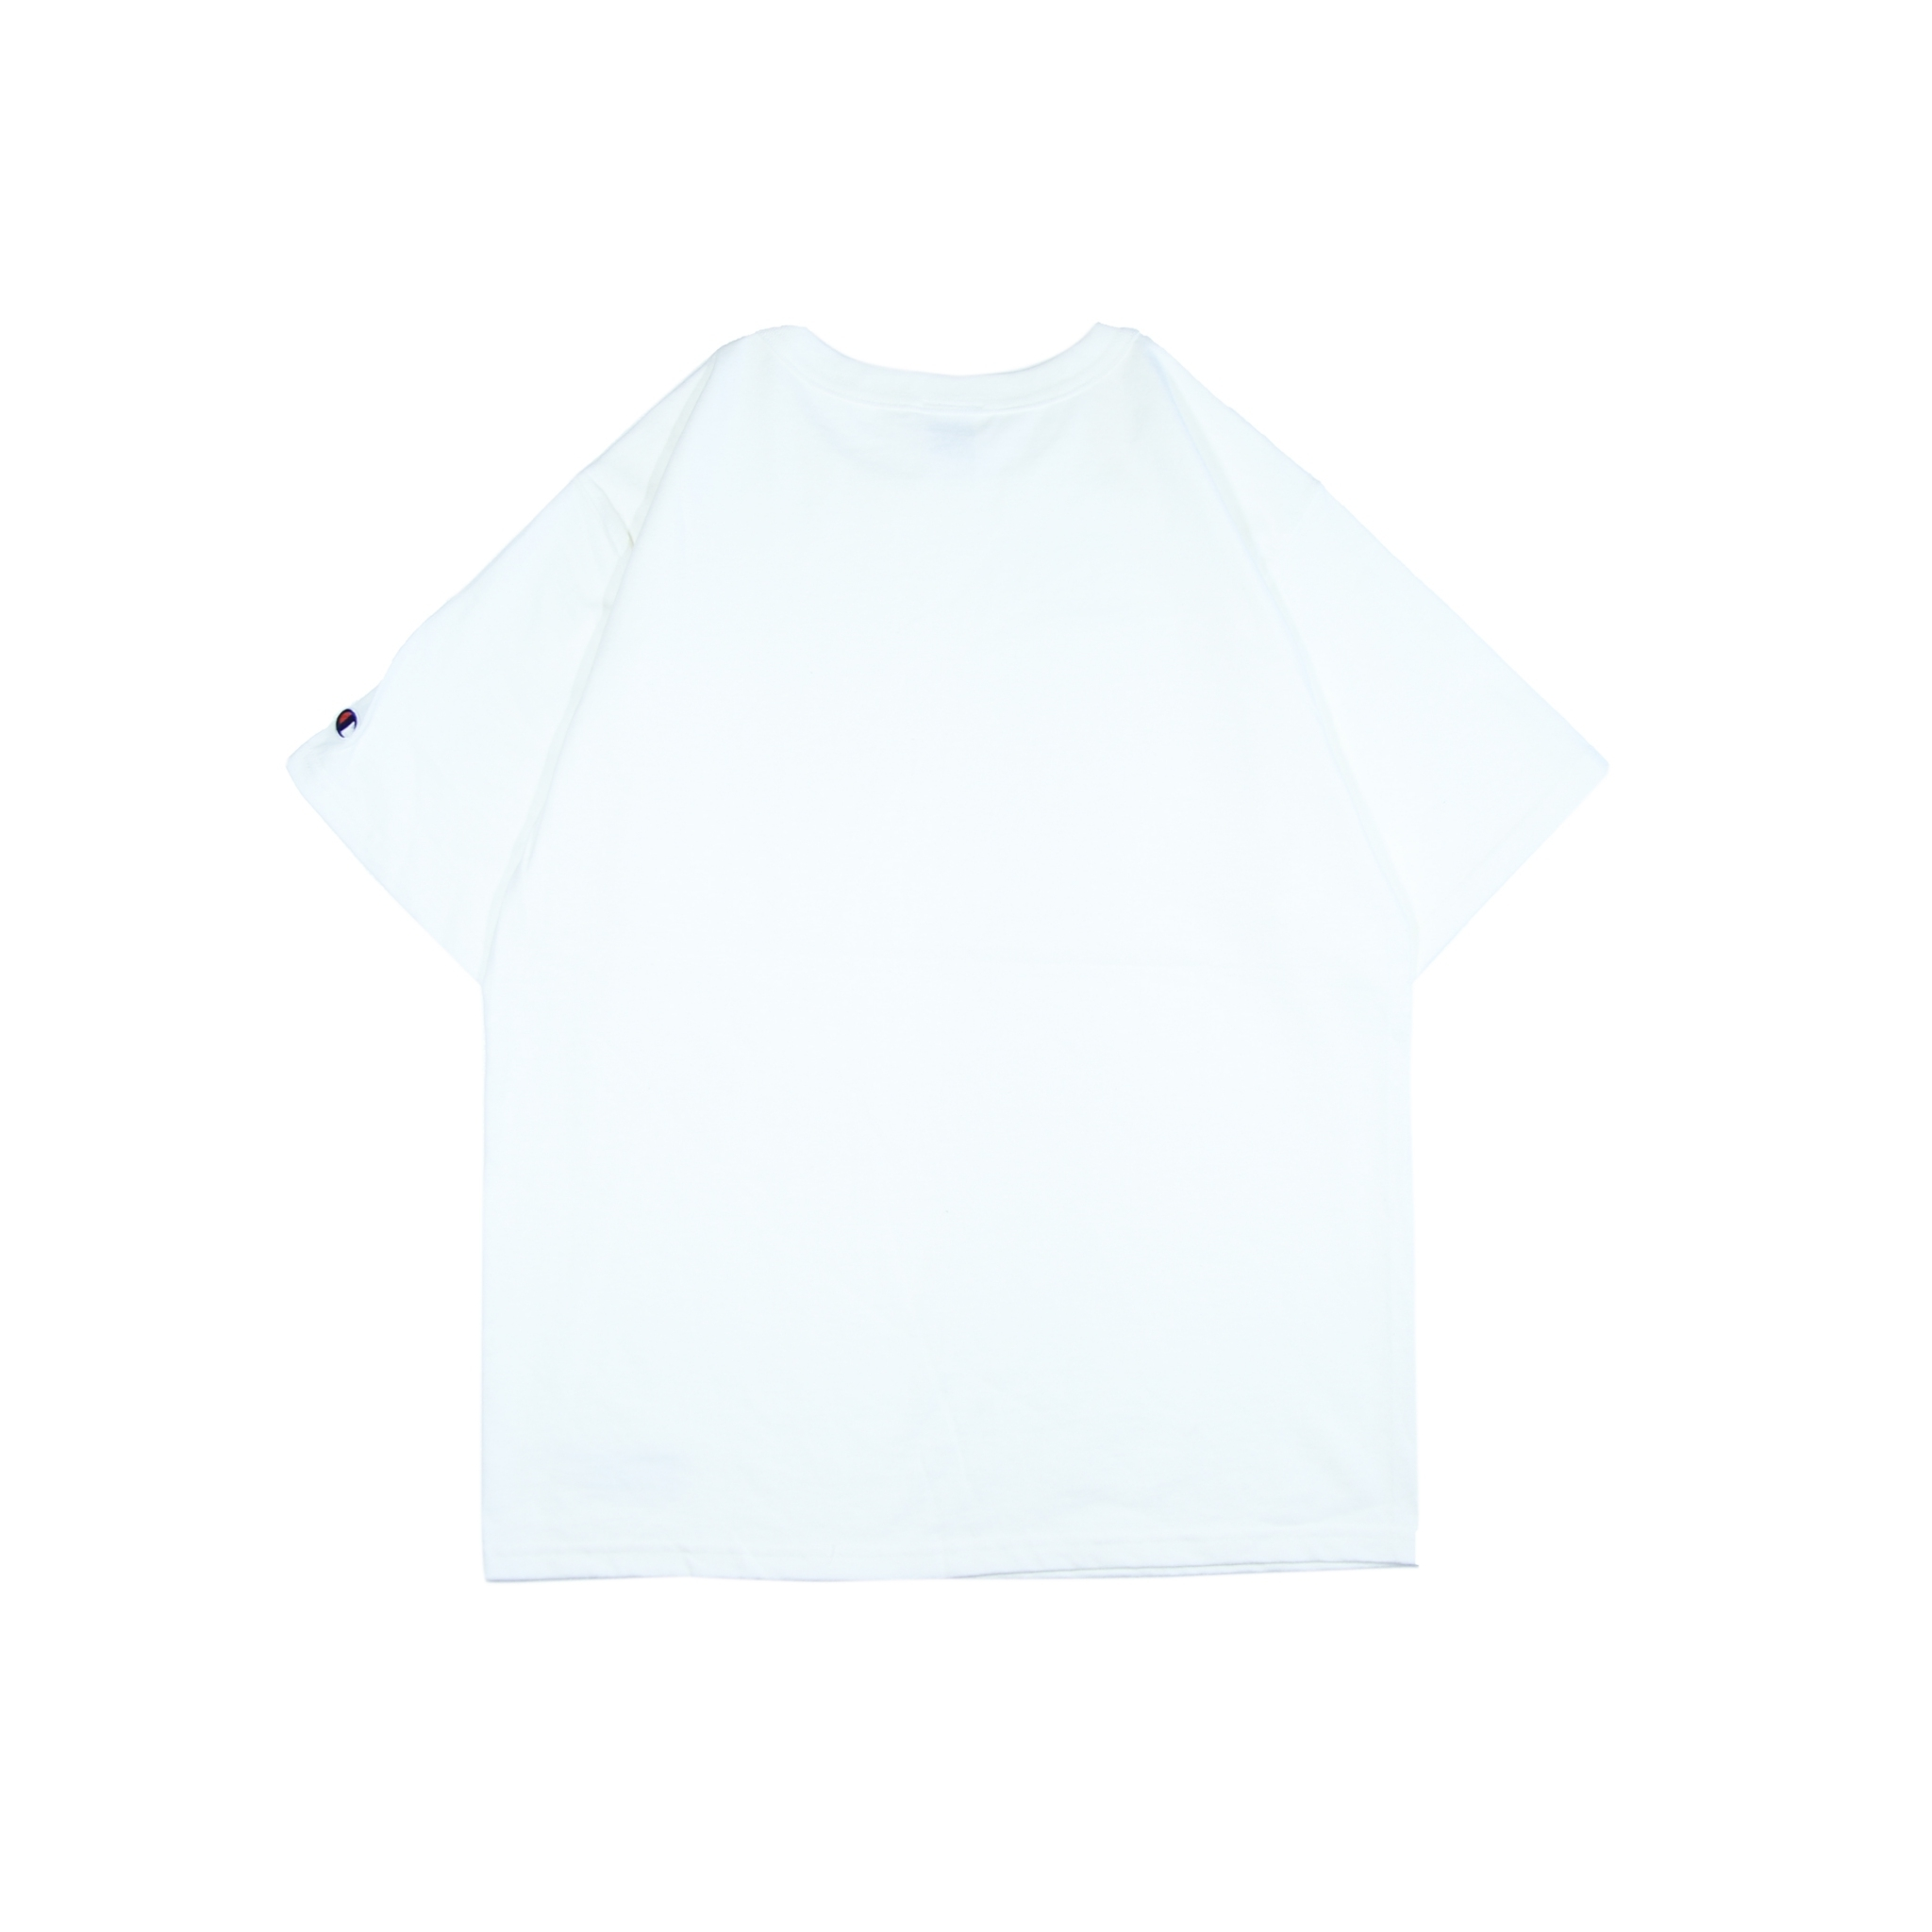 KB CHAMPION 7oz Heritage TEE [WHITE]